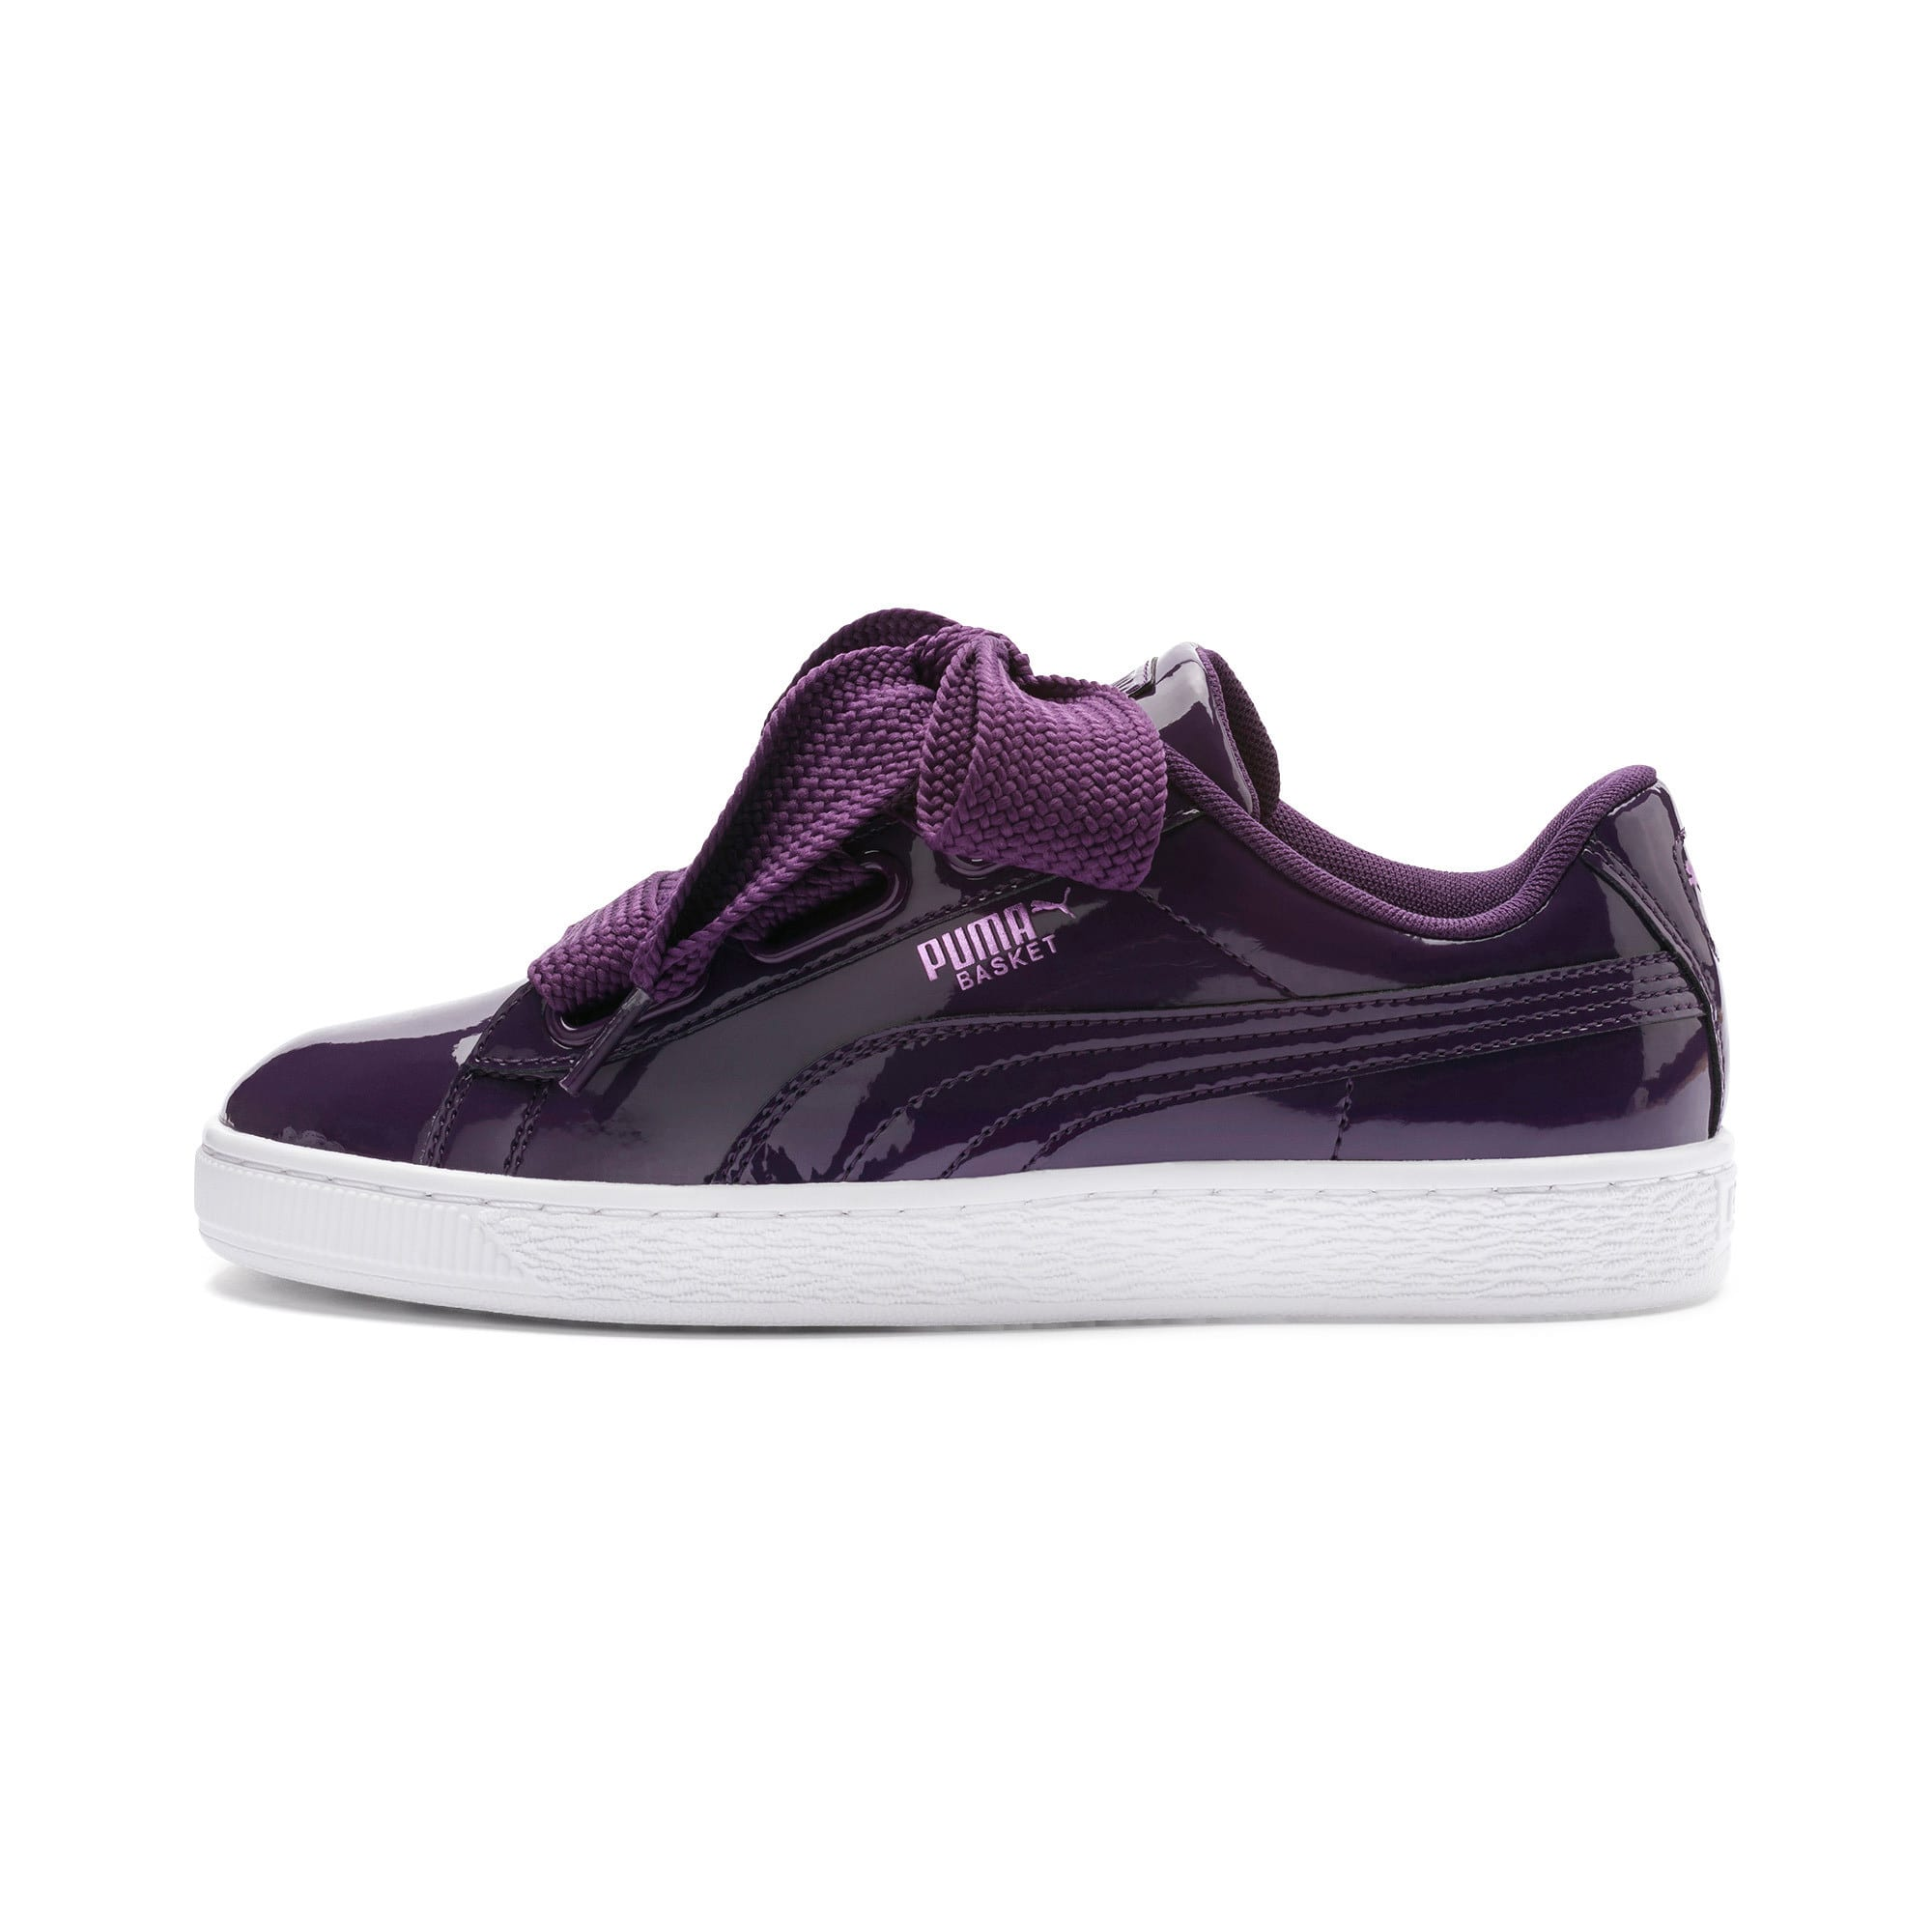 Basket Heart Patent Women's Trainers, Indigo-Puma White, large-IND